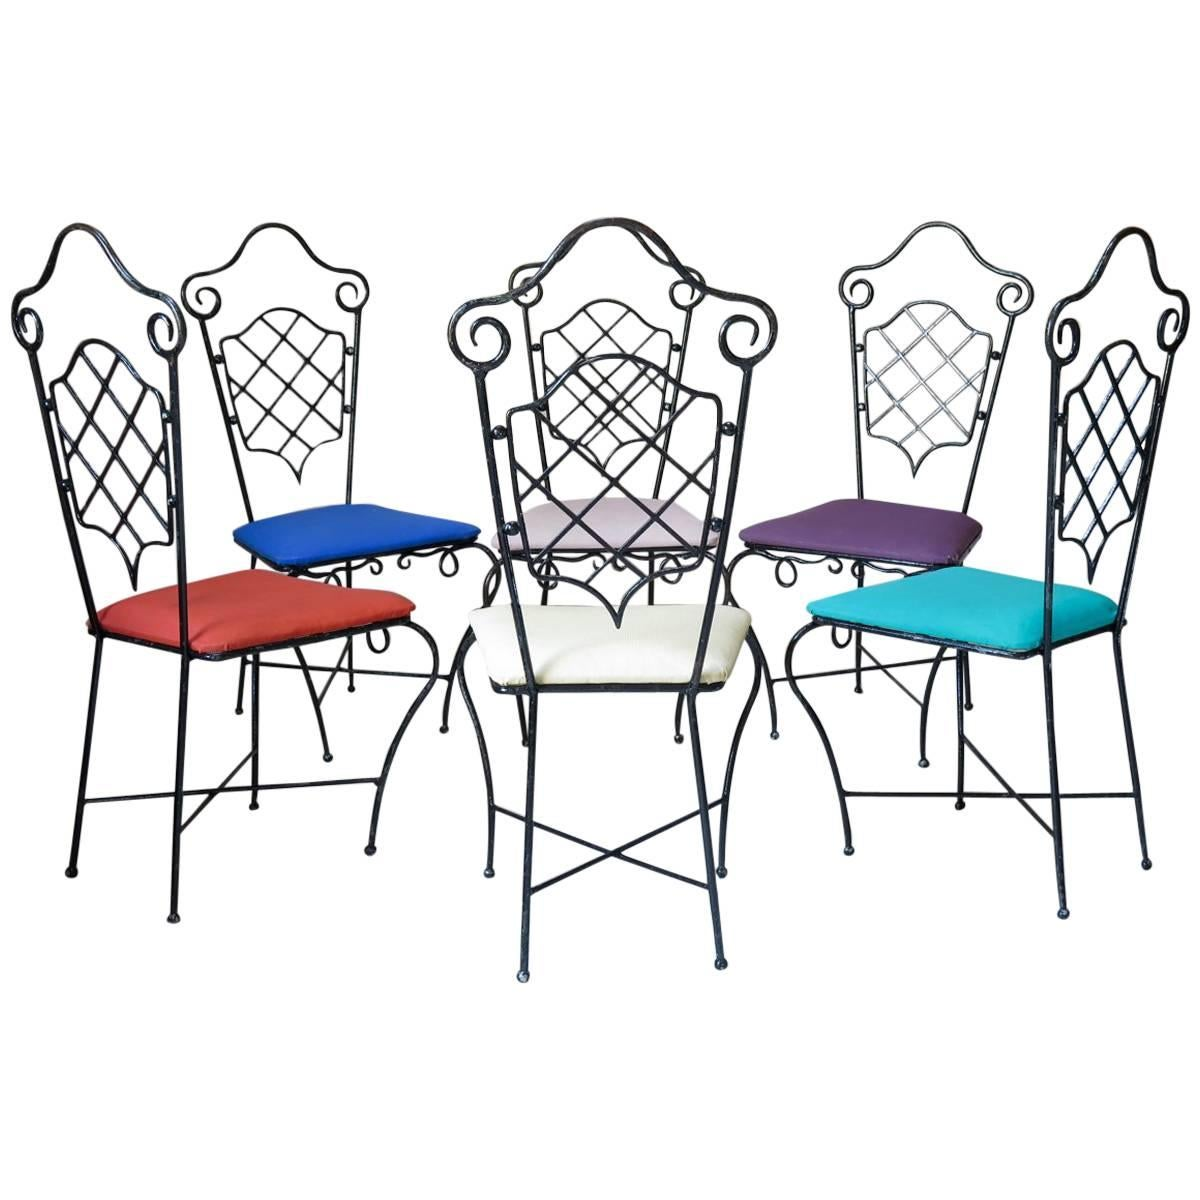 Six Chairs Attributed to René Prou, France, 1940s